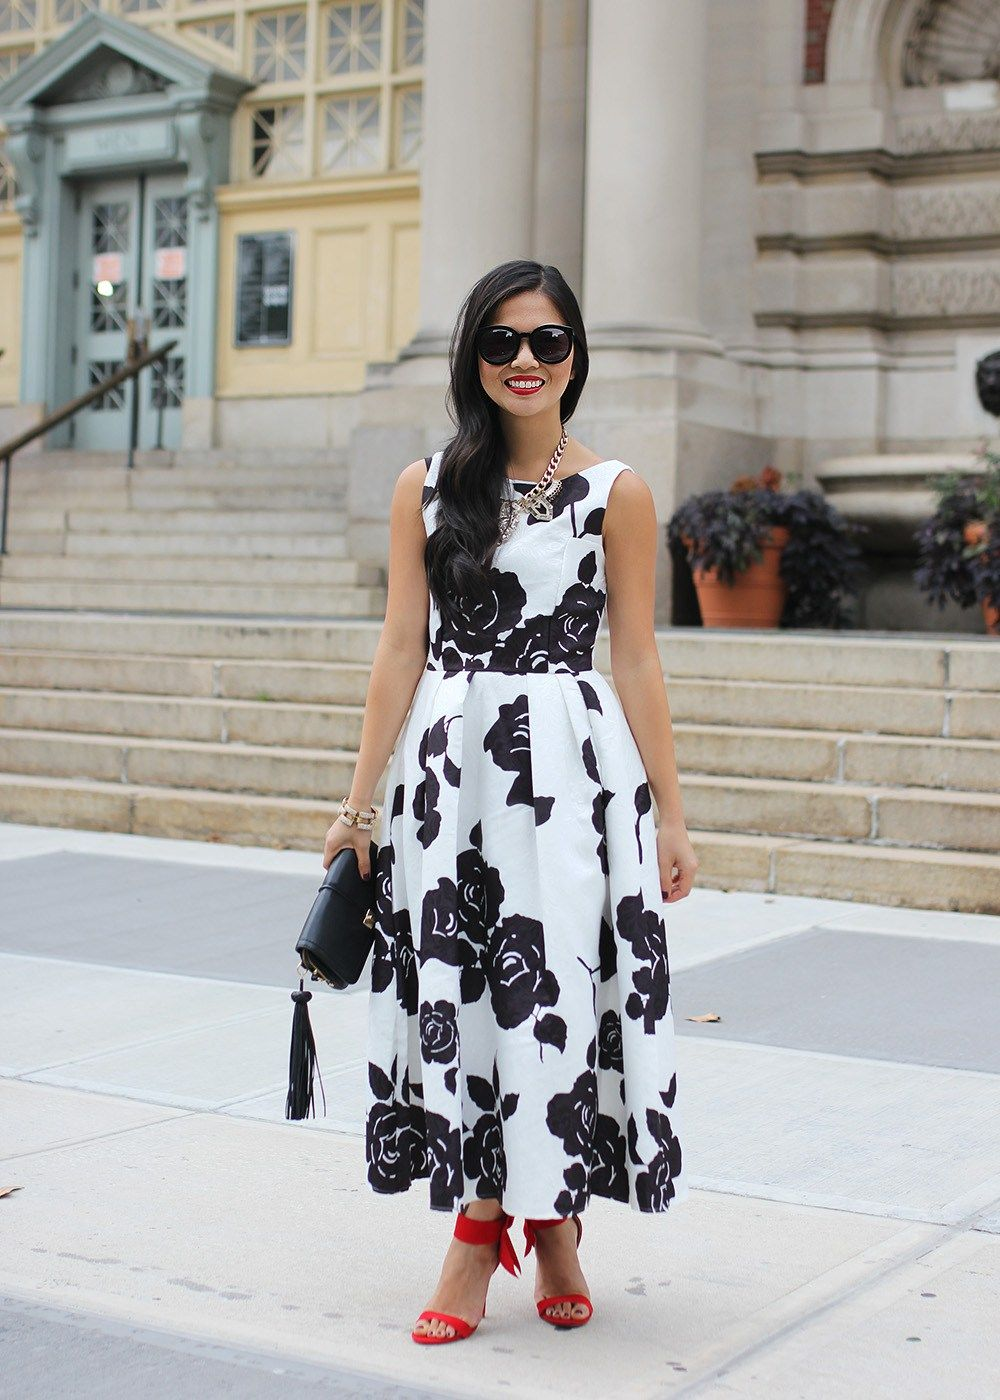 23+ Black and white floral dress ideas in 2021